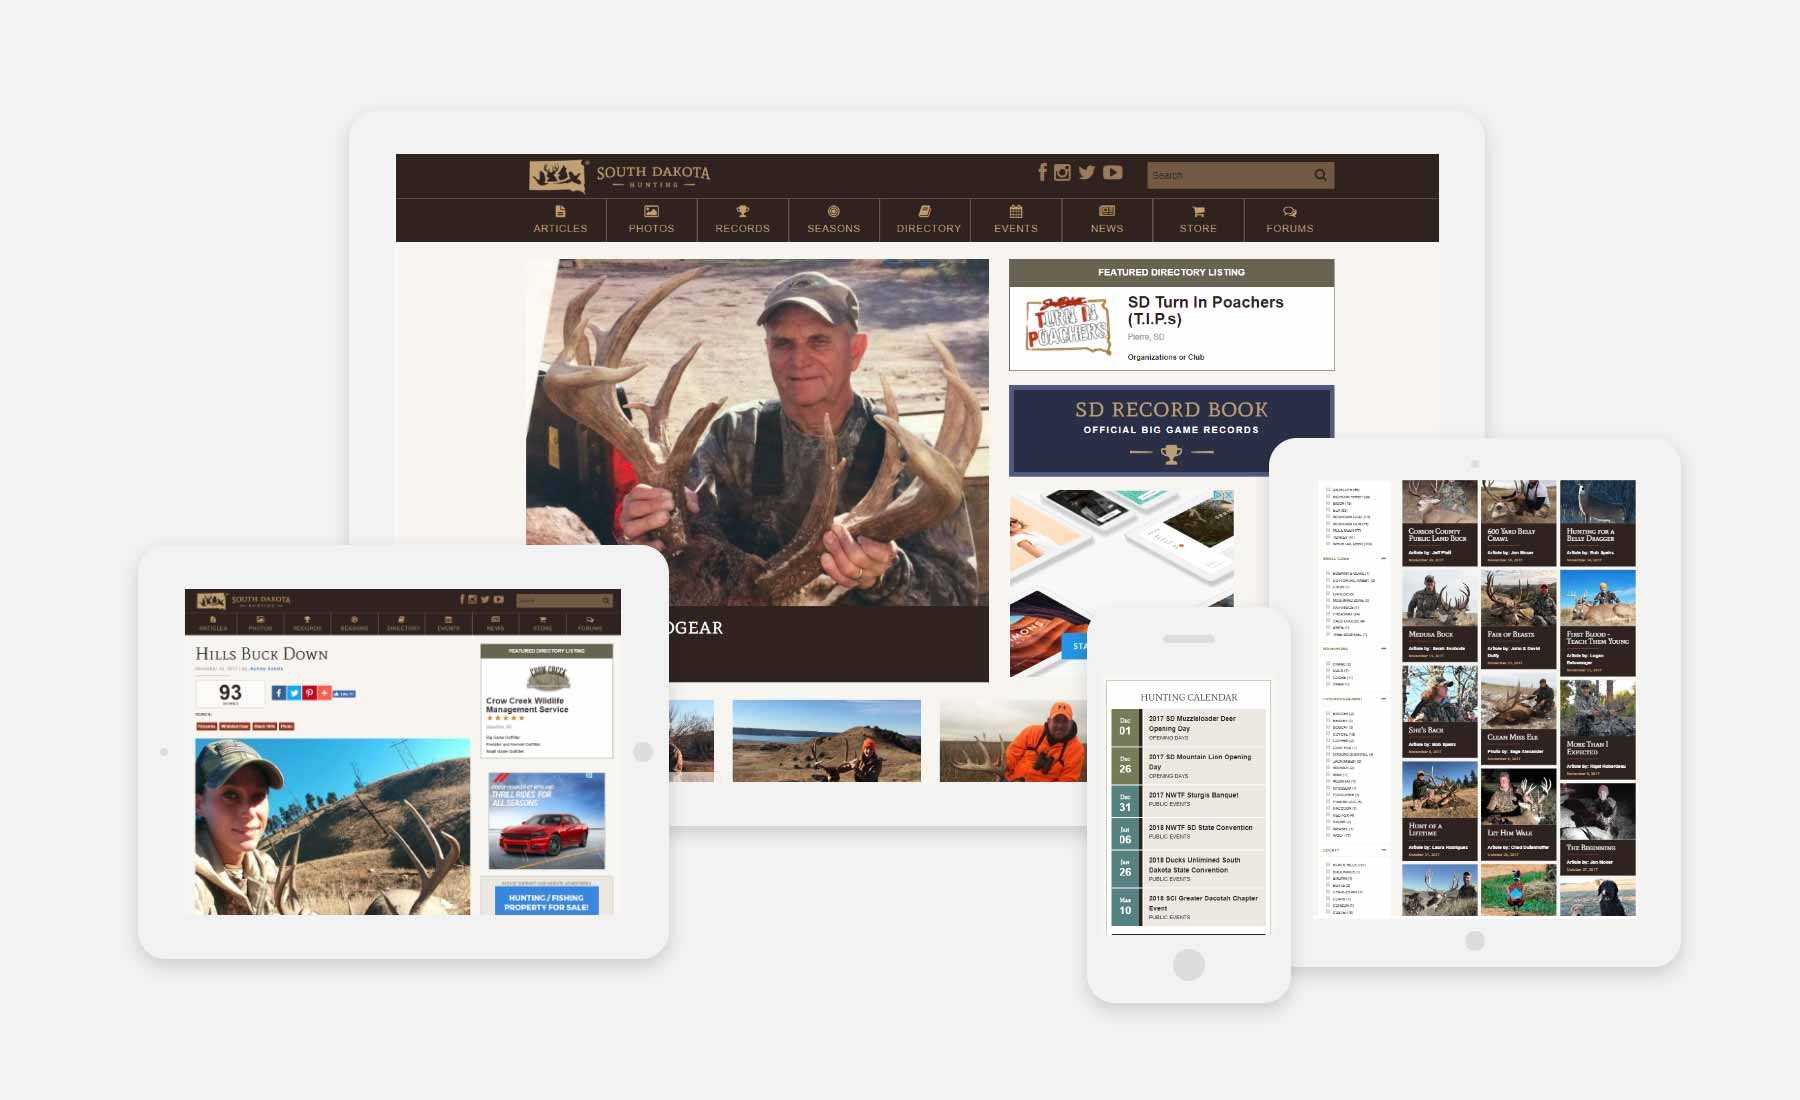 South Dakota Hunting responsive website shown on several devices